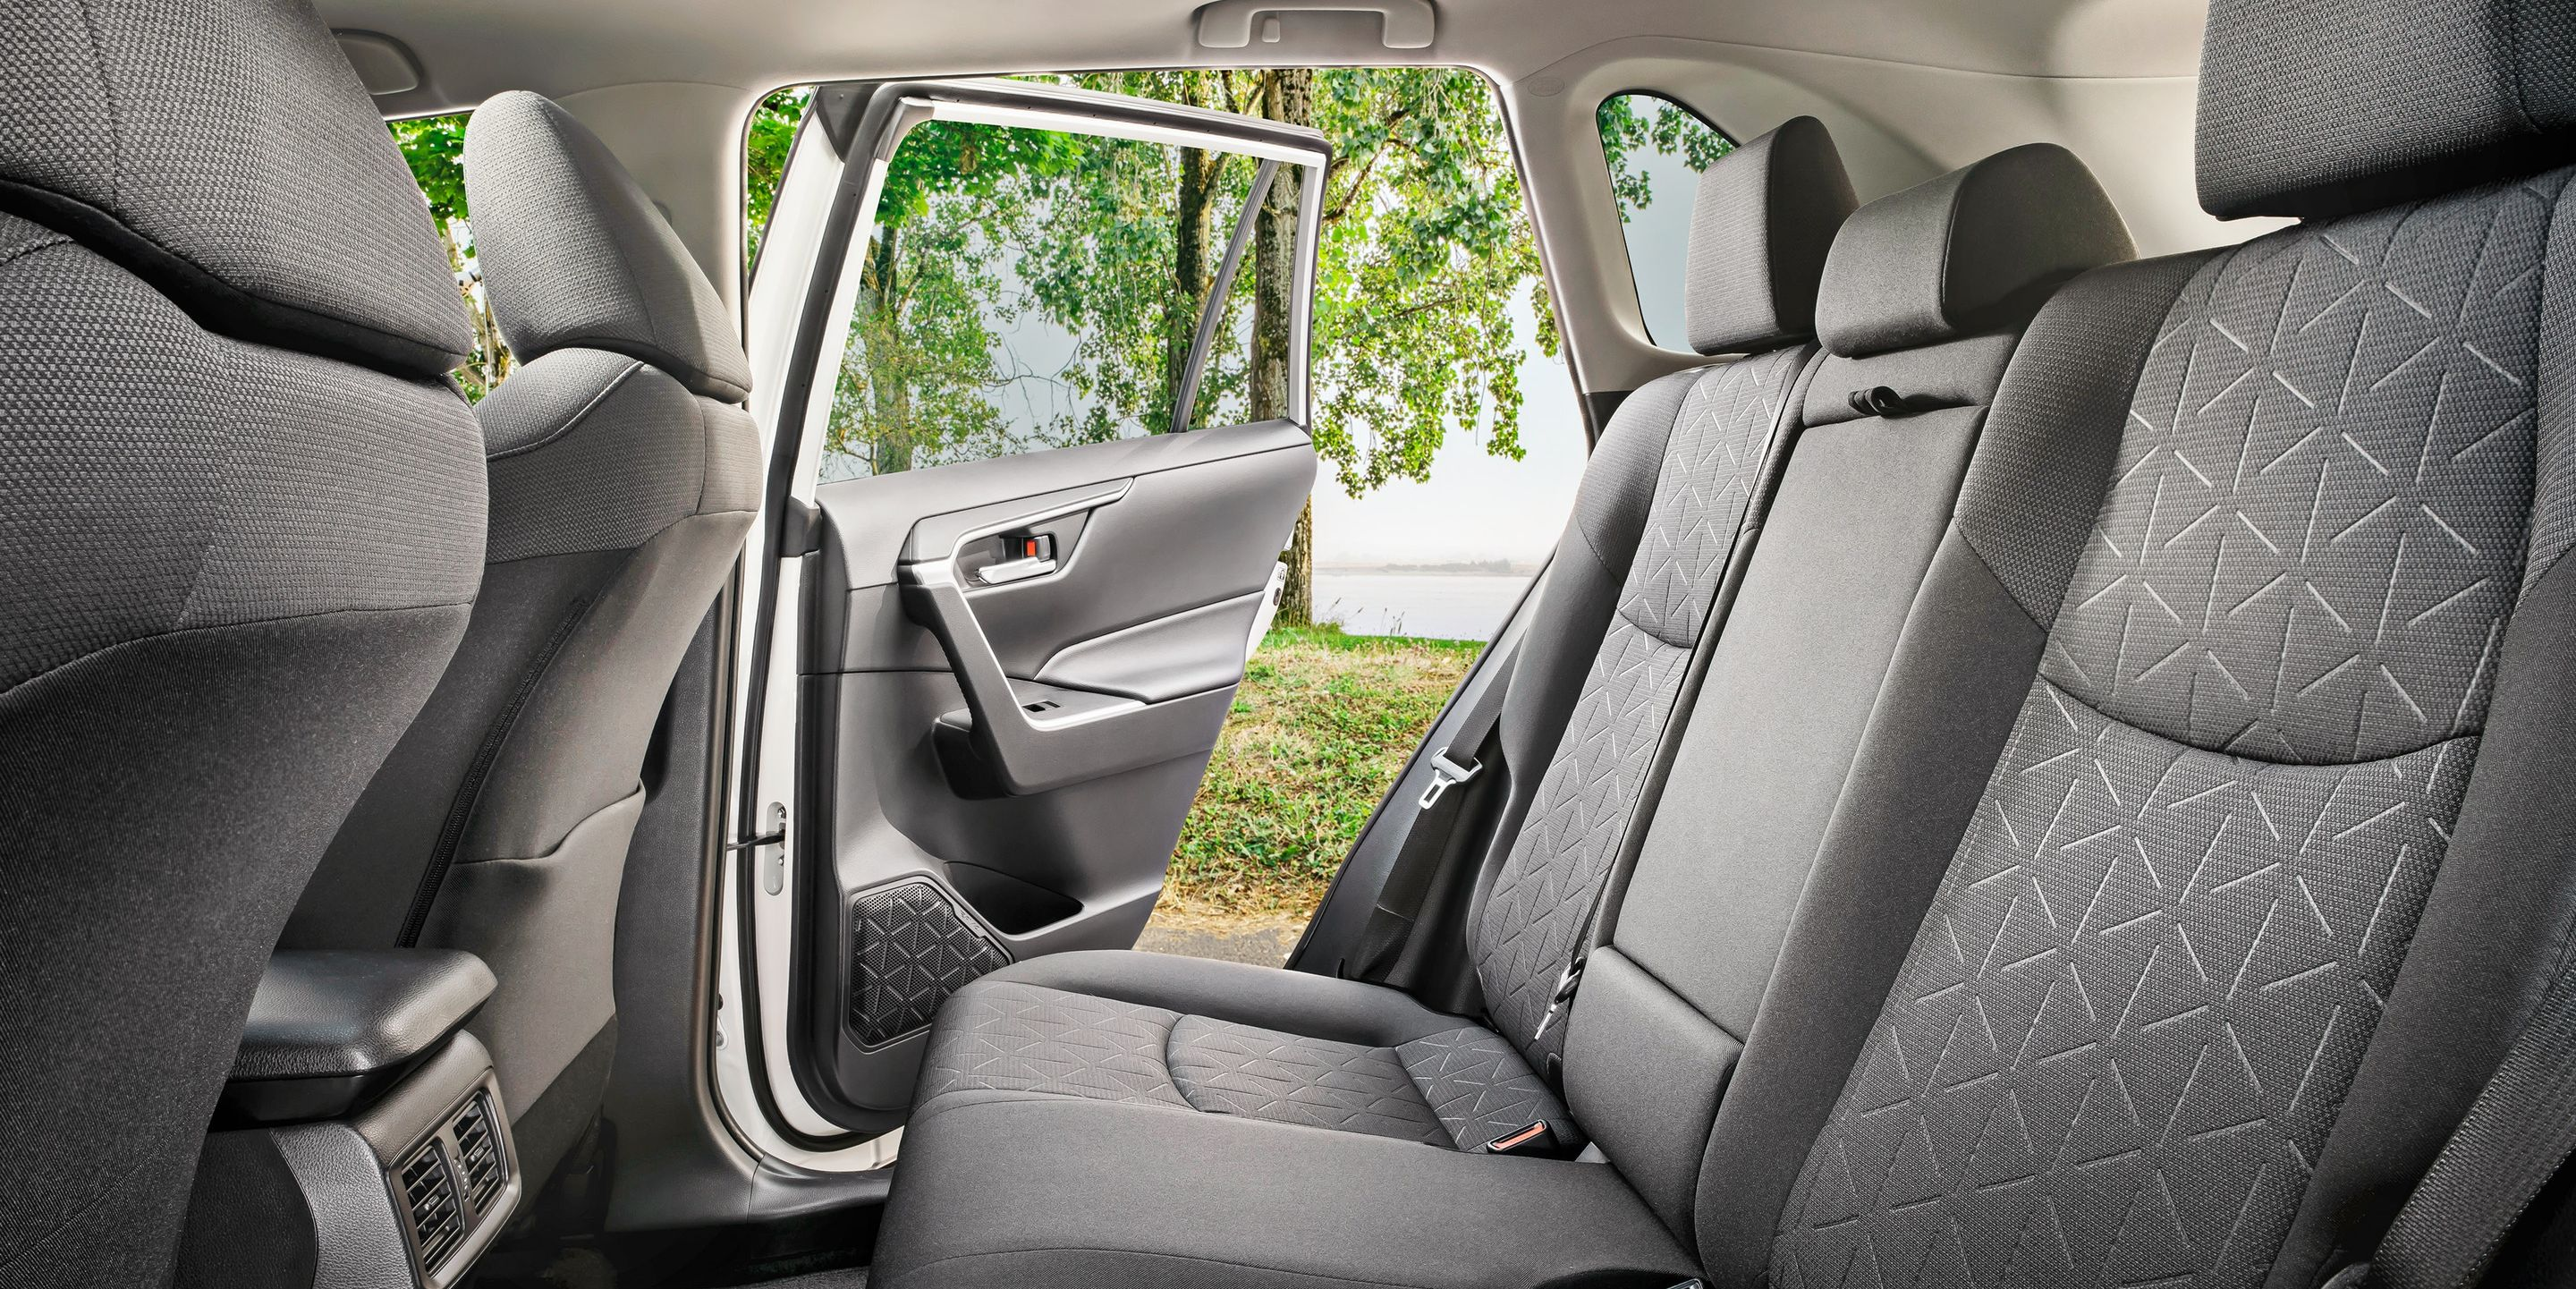 2019 Toyota RAV4 Rear Seating